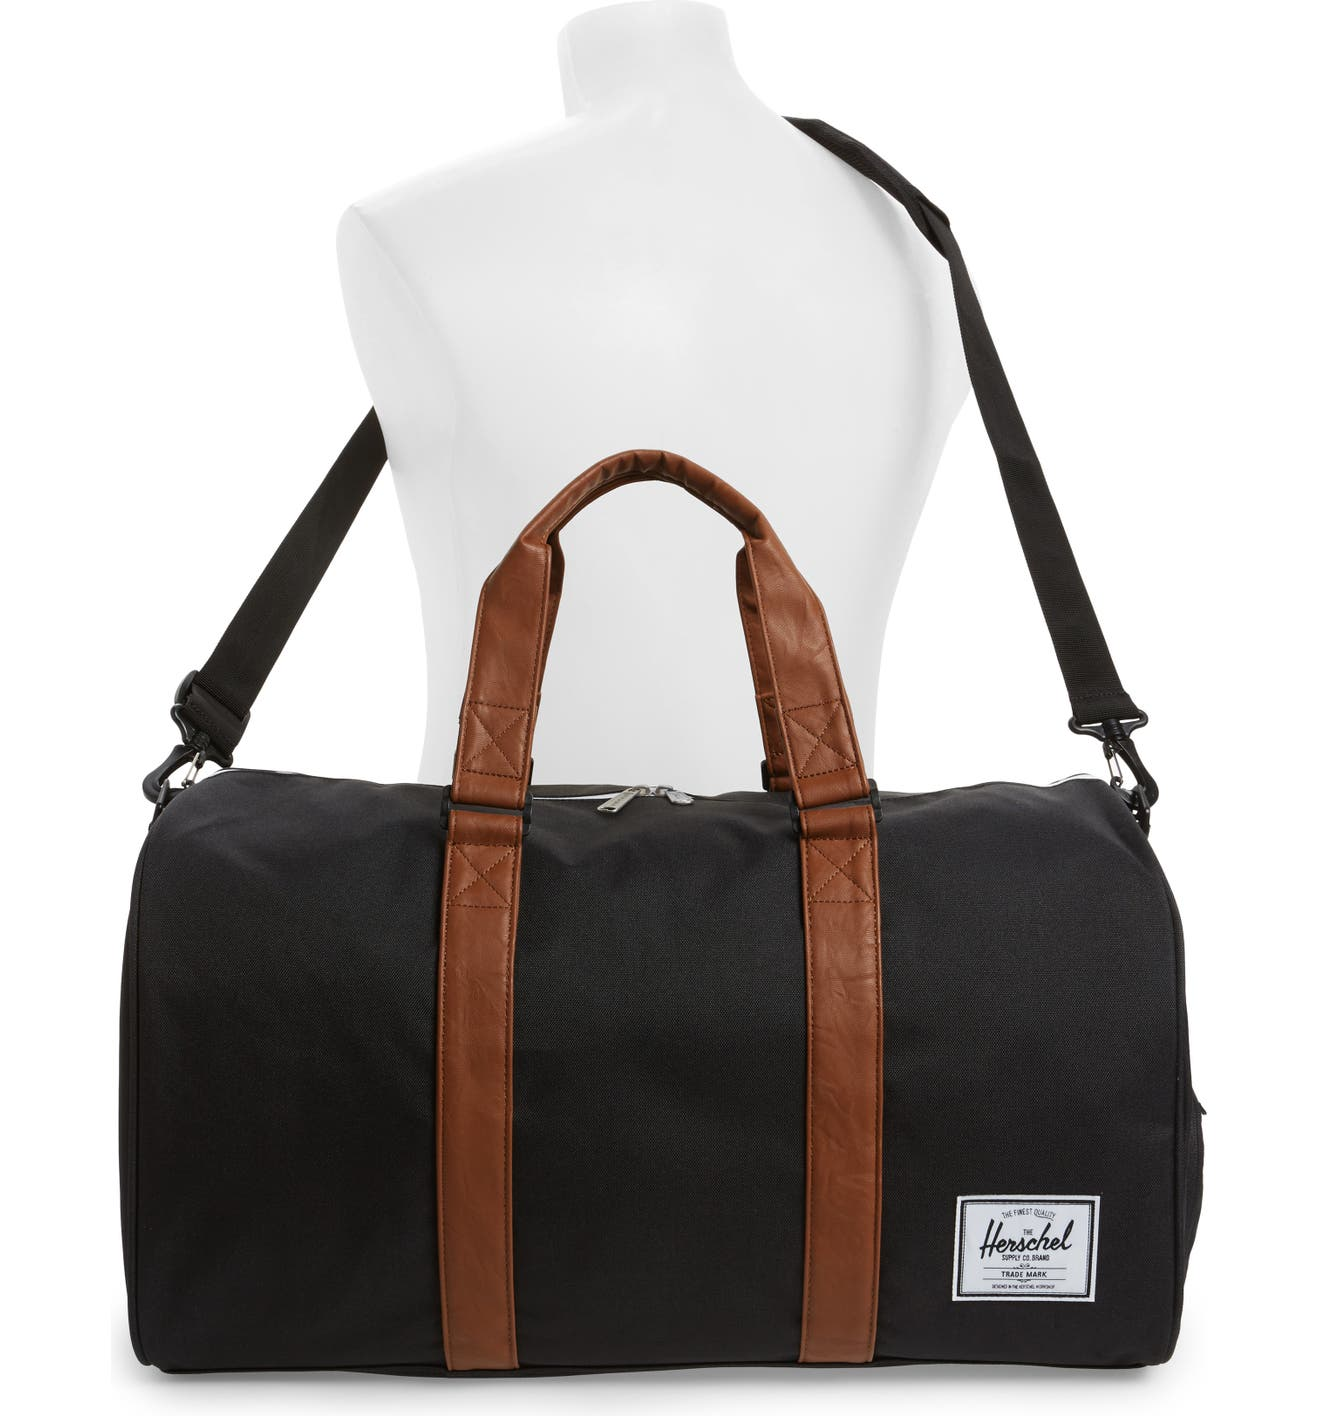 c331ee85d940 Herschel Supply Co. Novel Duffel Bag